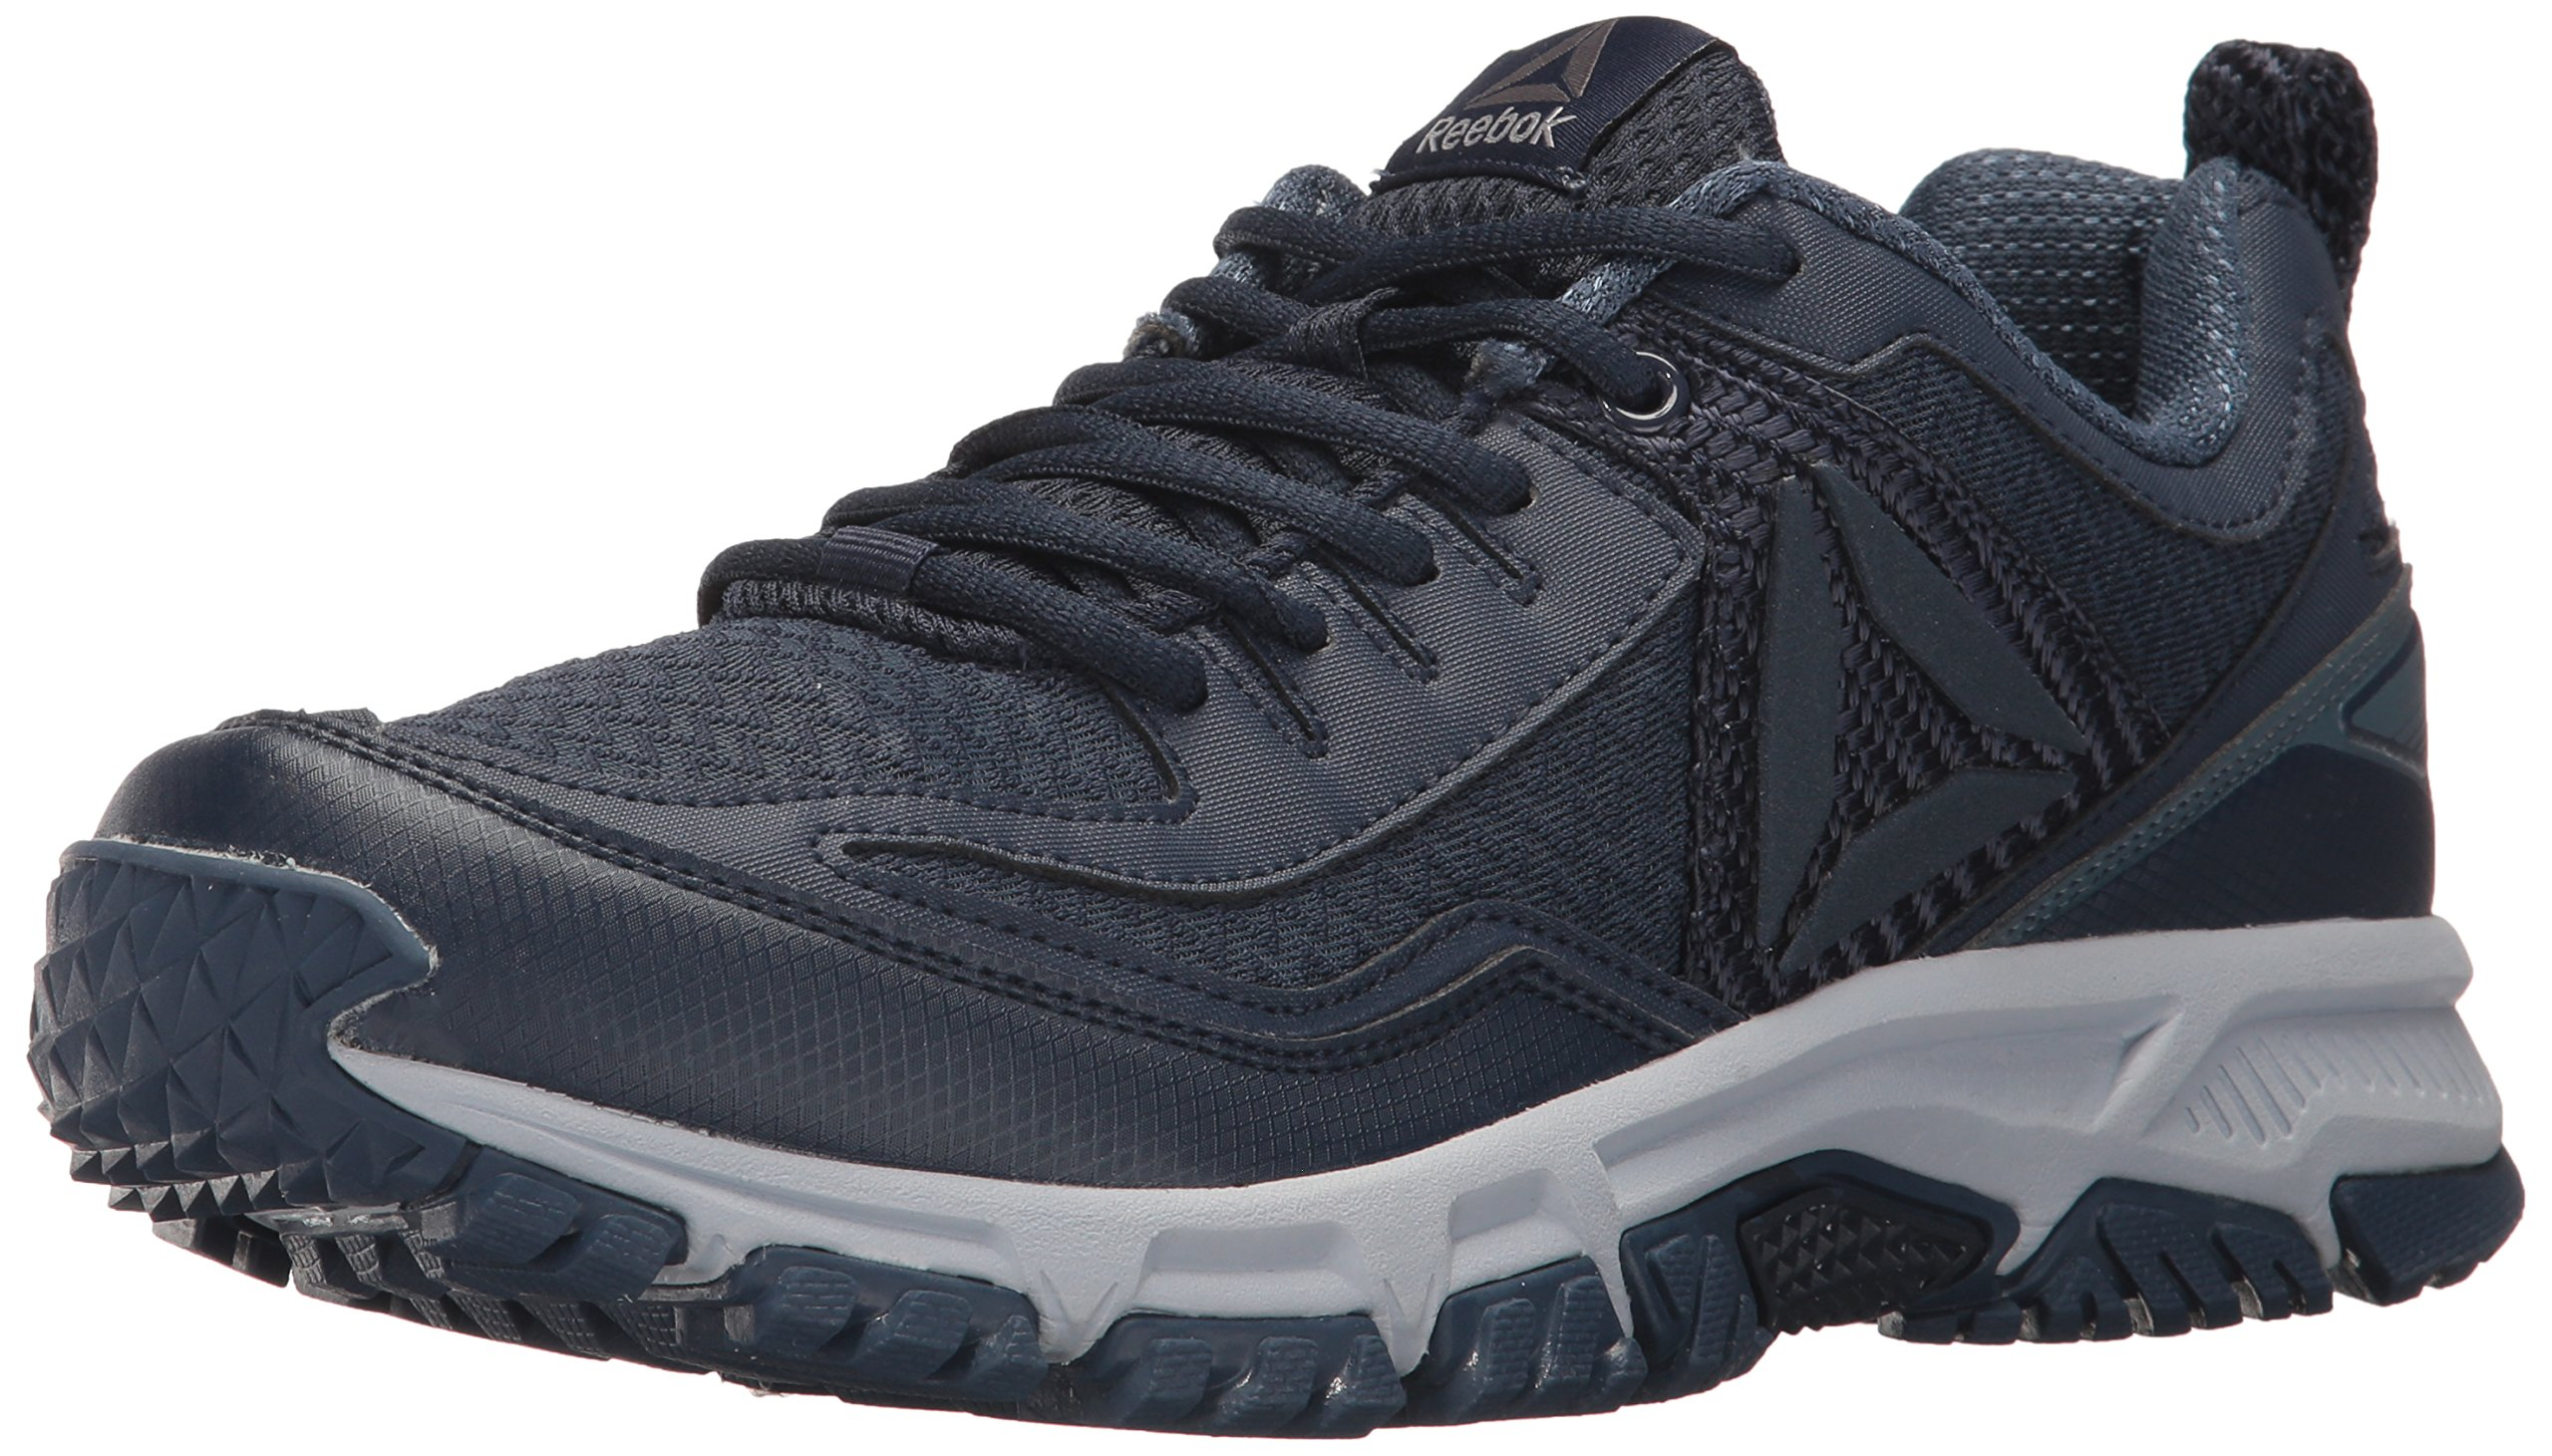 Reebok Men's Ridgerider 2.0 Trail Runner, Coll. Navy/Smoky Indigo/Meteor/Black/Silver/Pewter, 10 M US by Reebok